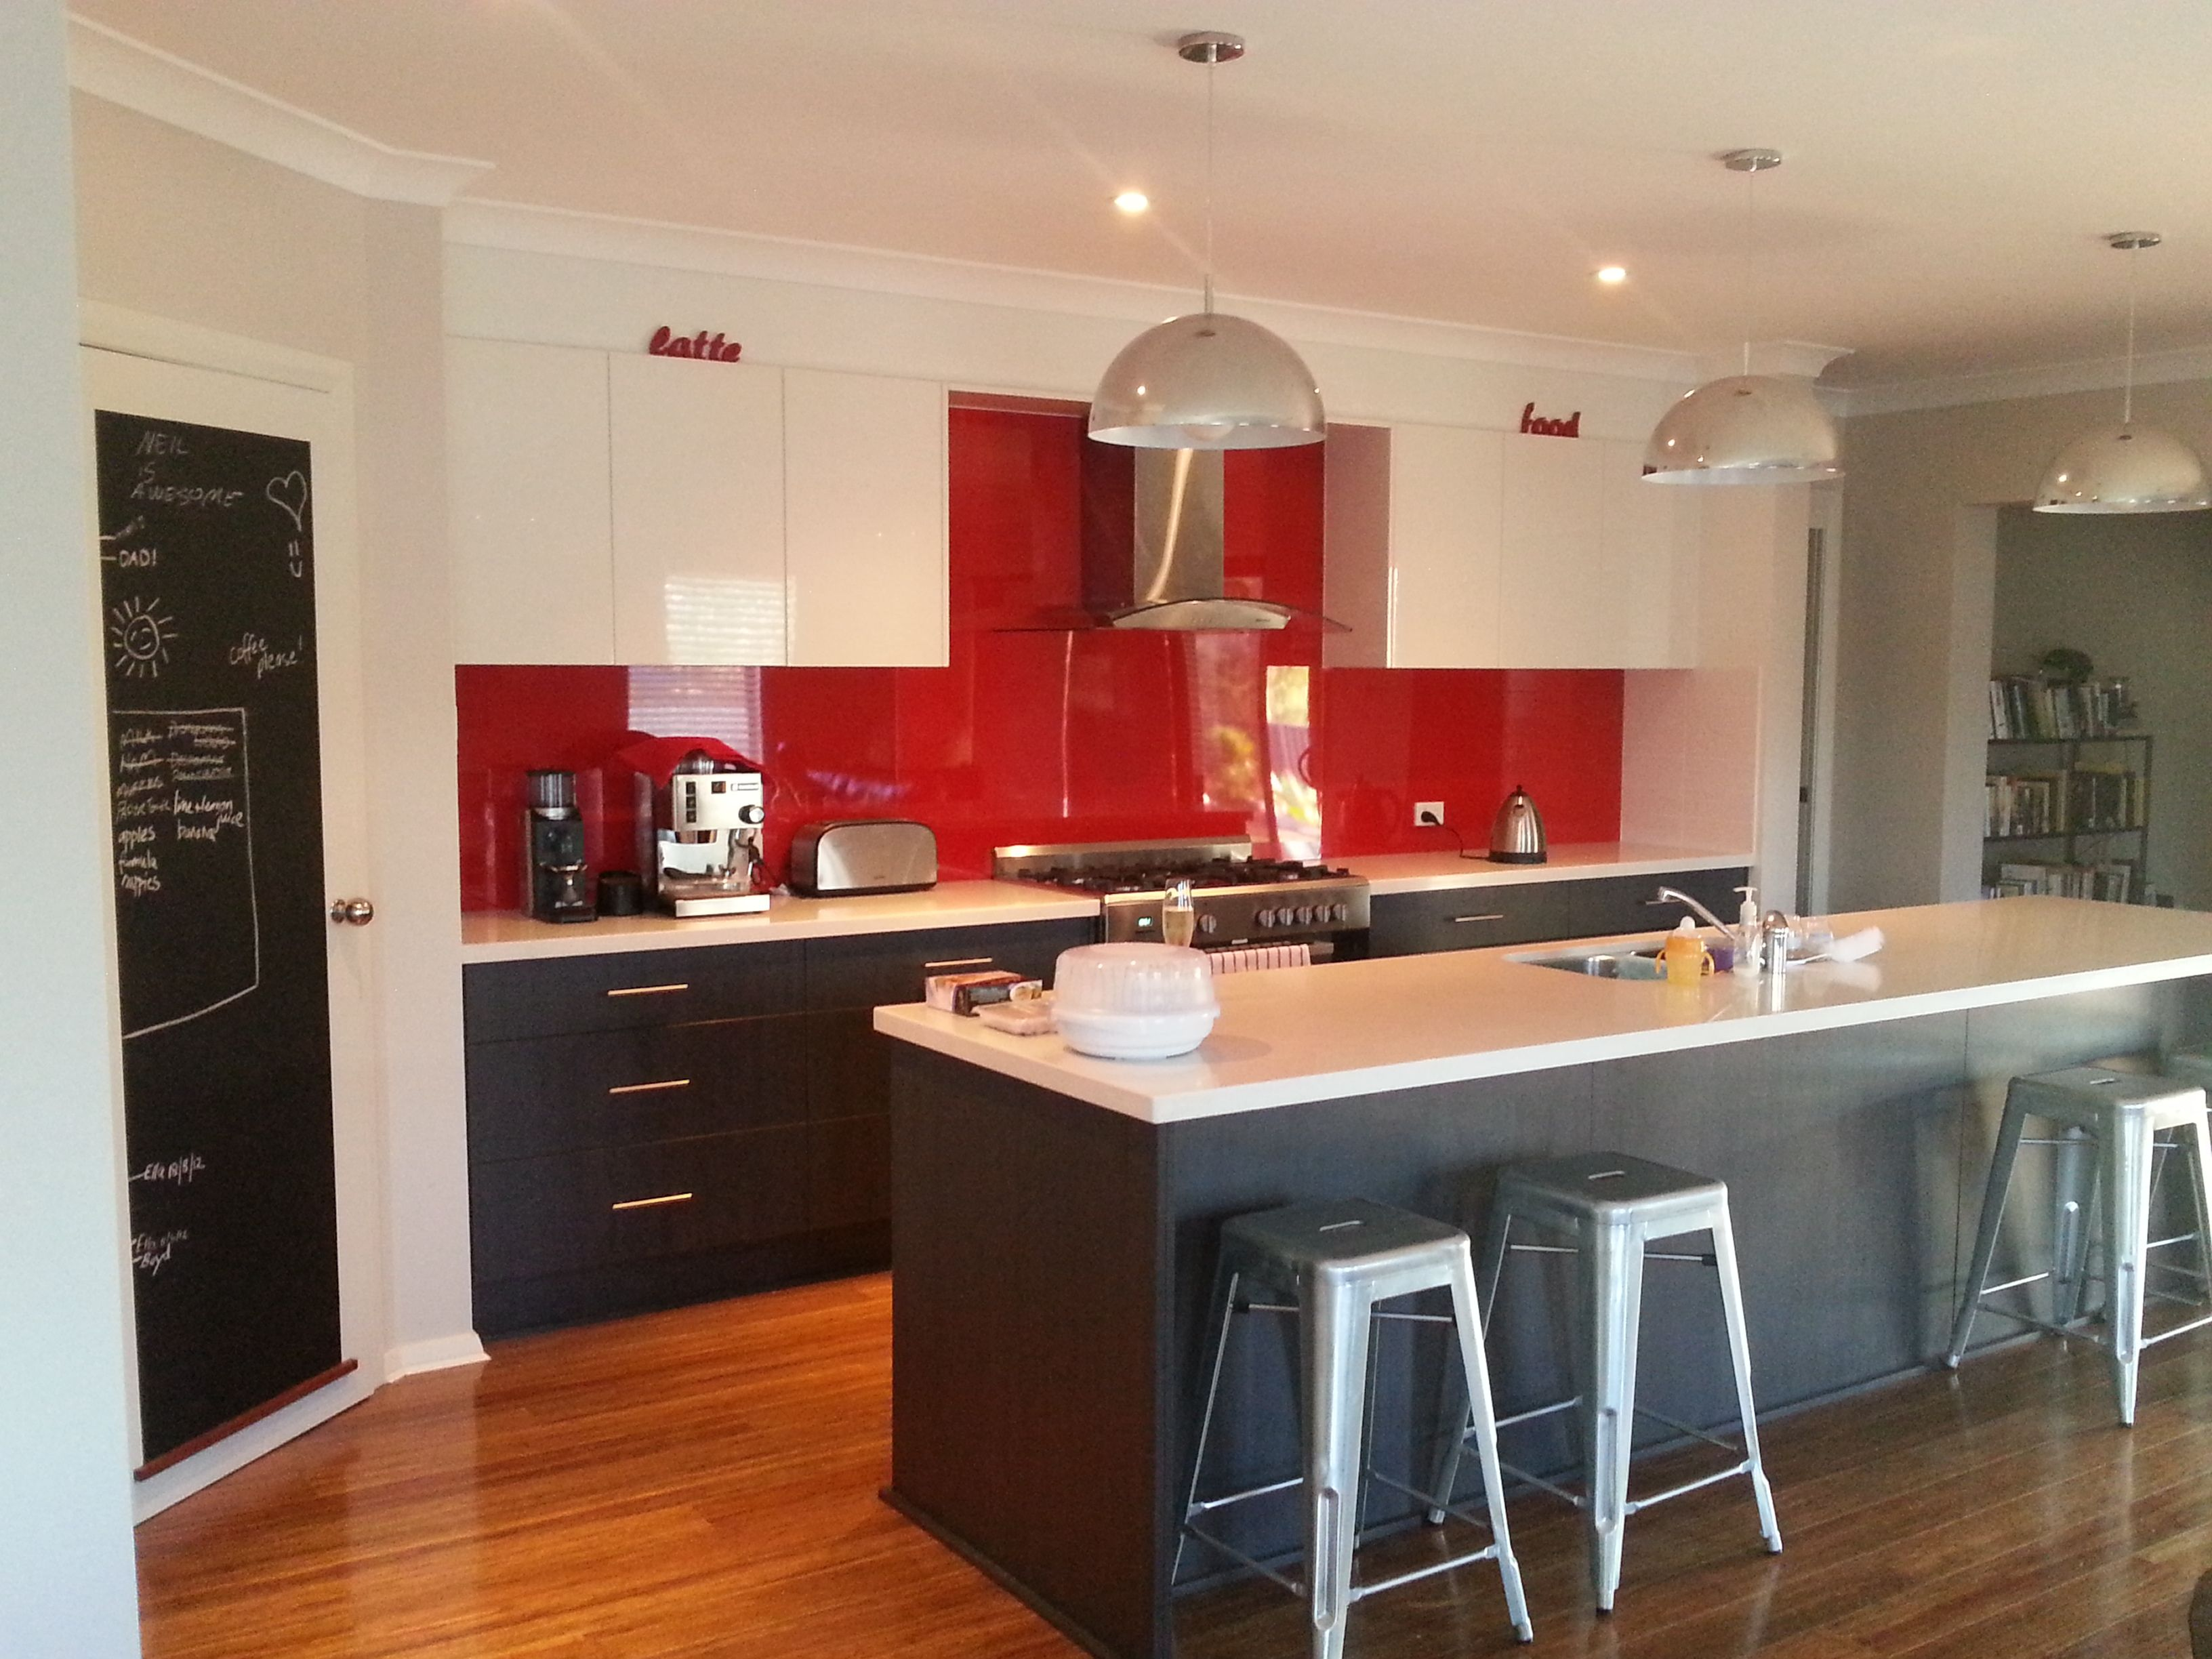 Red Kitchen Splashback Like The Cb Pantry Door Kitchen Ideas Pinterest Red Kitchen Pantry